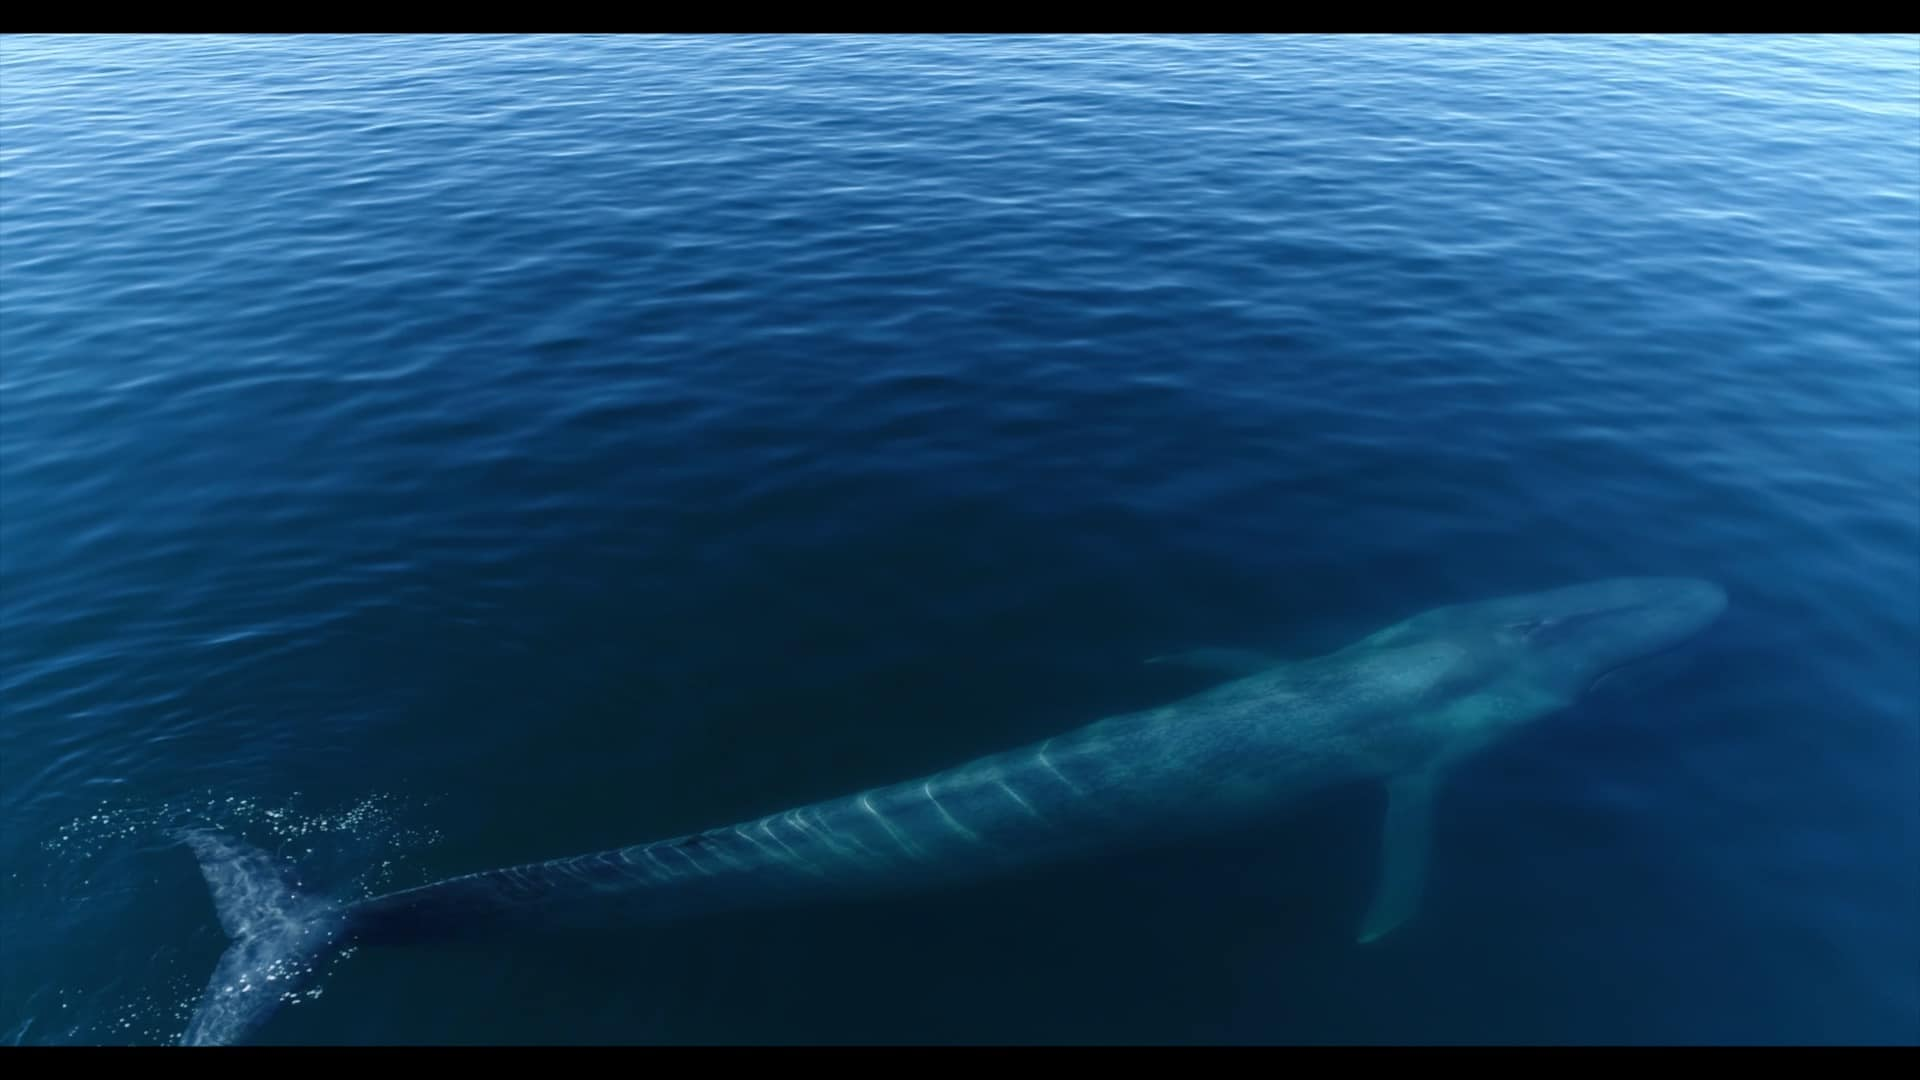 Blue Whale Festival Photographic Exhibition